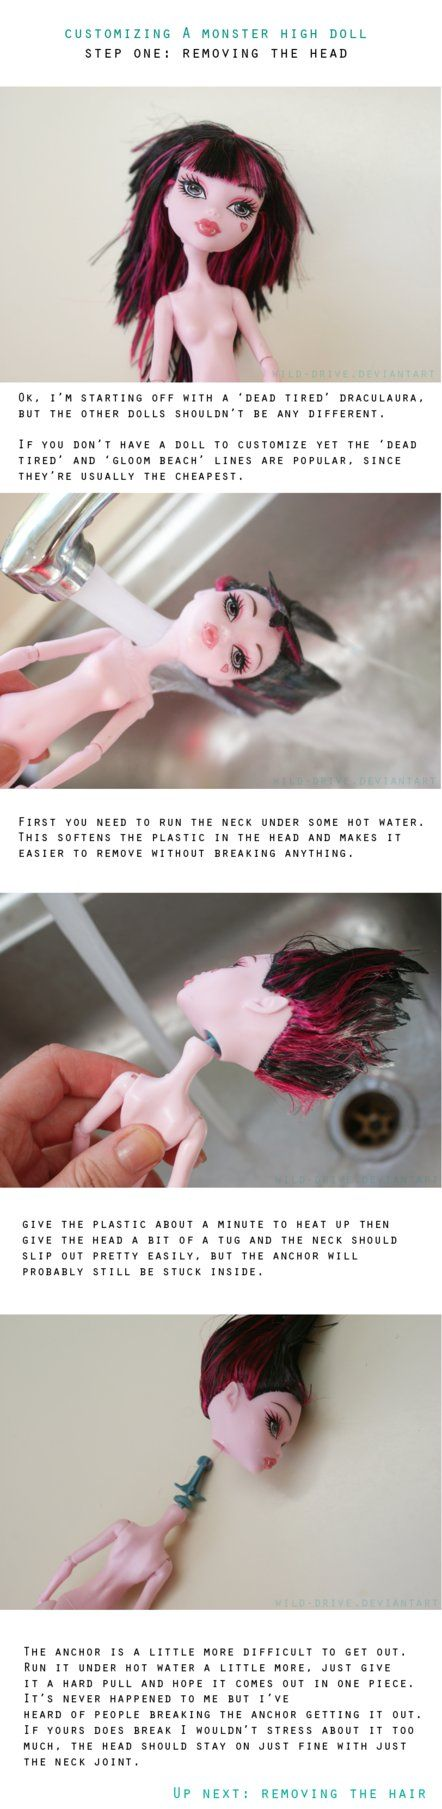 Customizing a MH Doll : Step One by wild-drive on DeviantArt